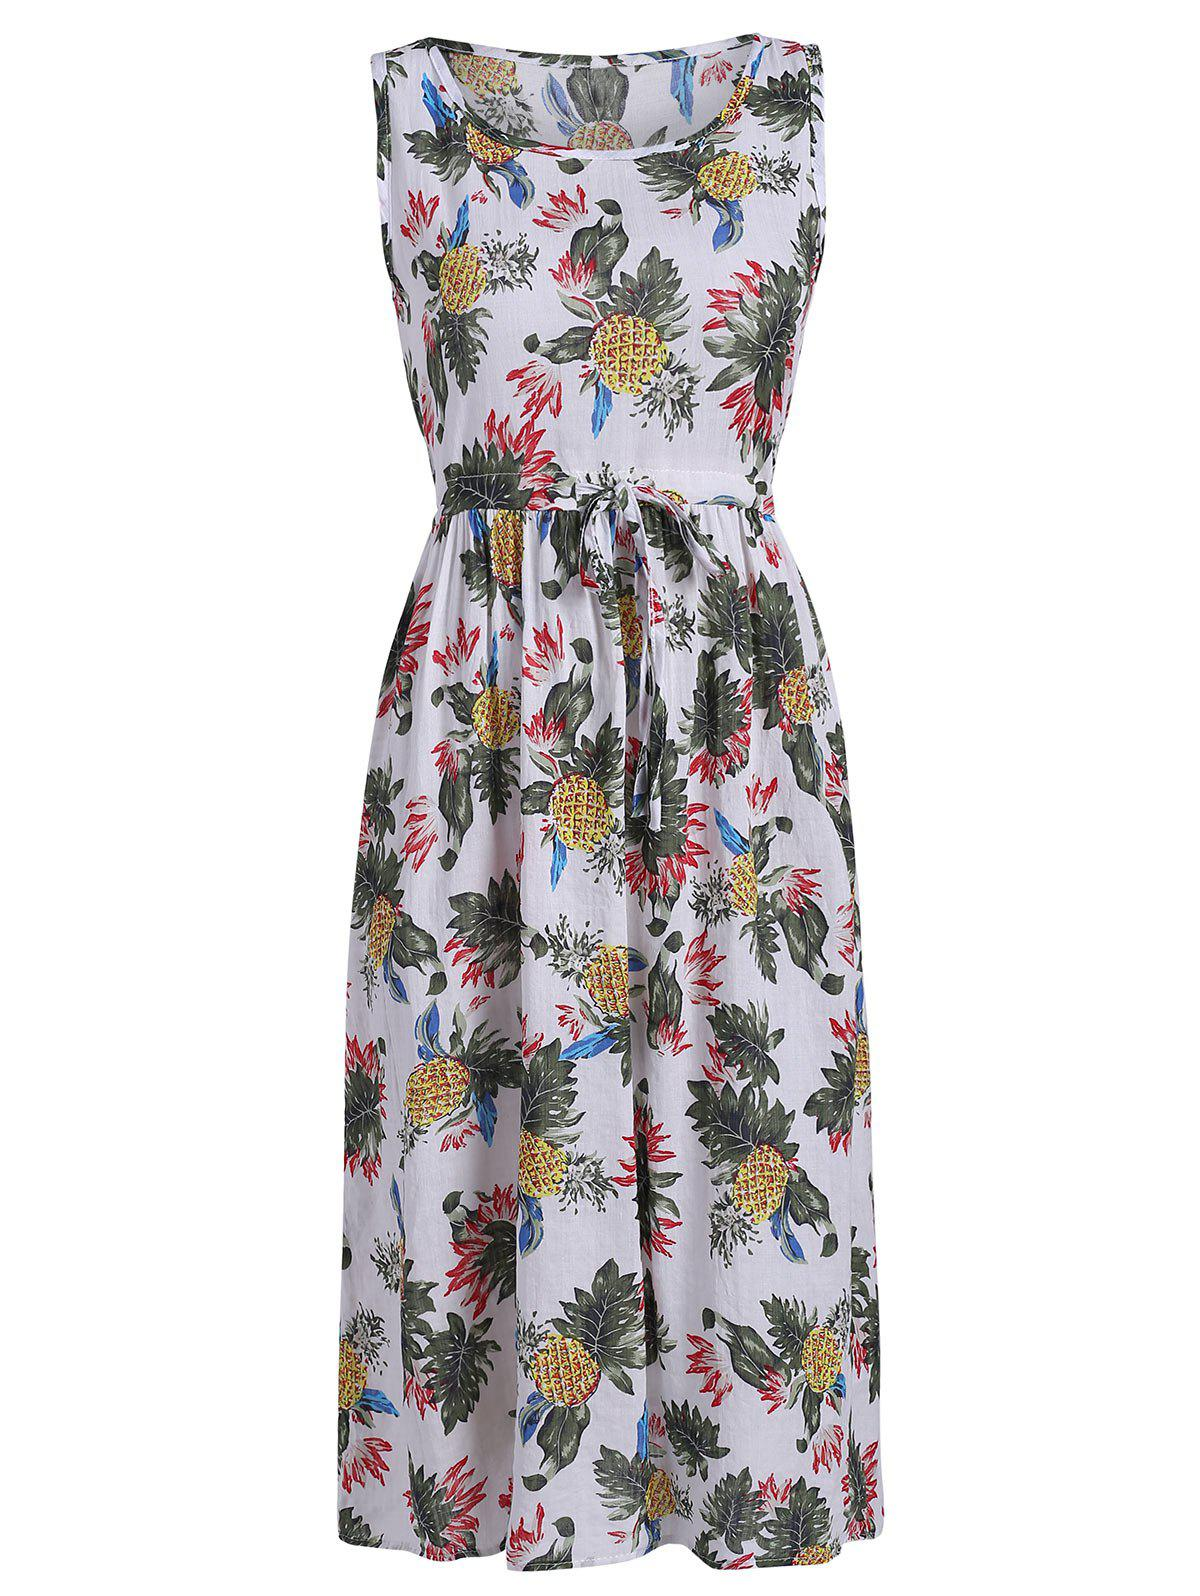 New Pineapple Printed Midi Dress